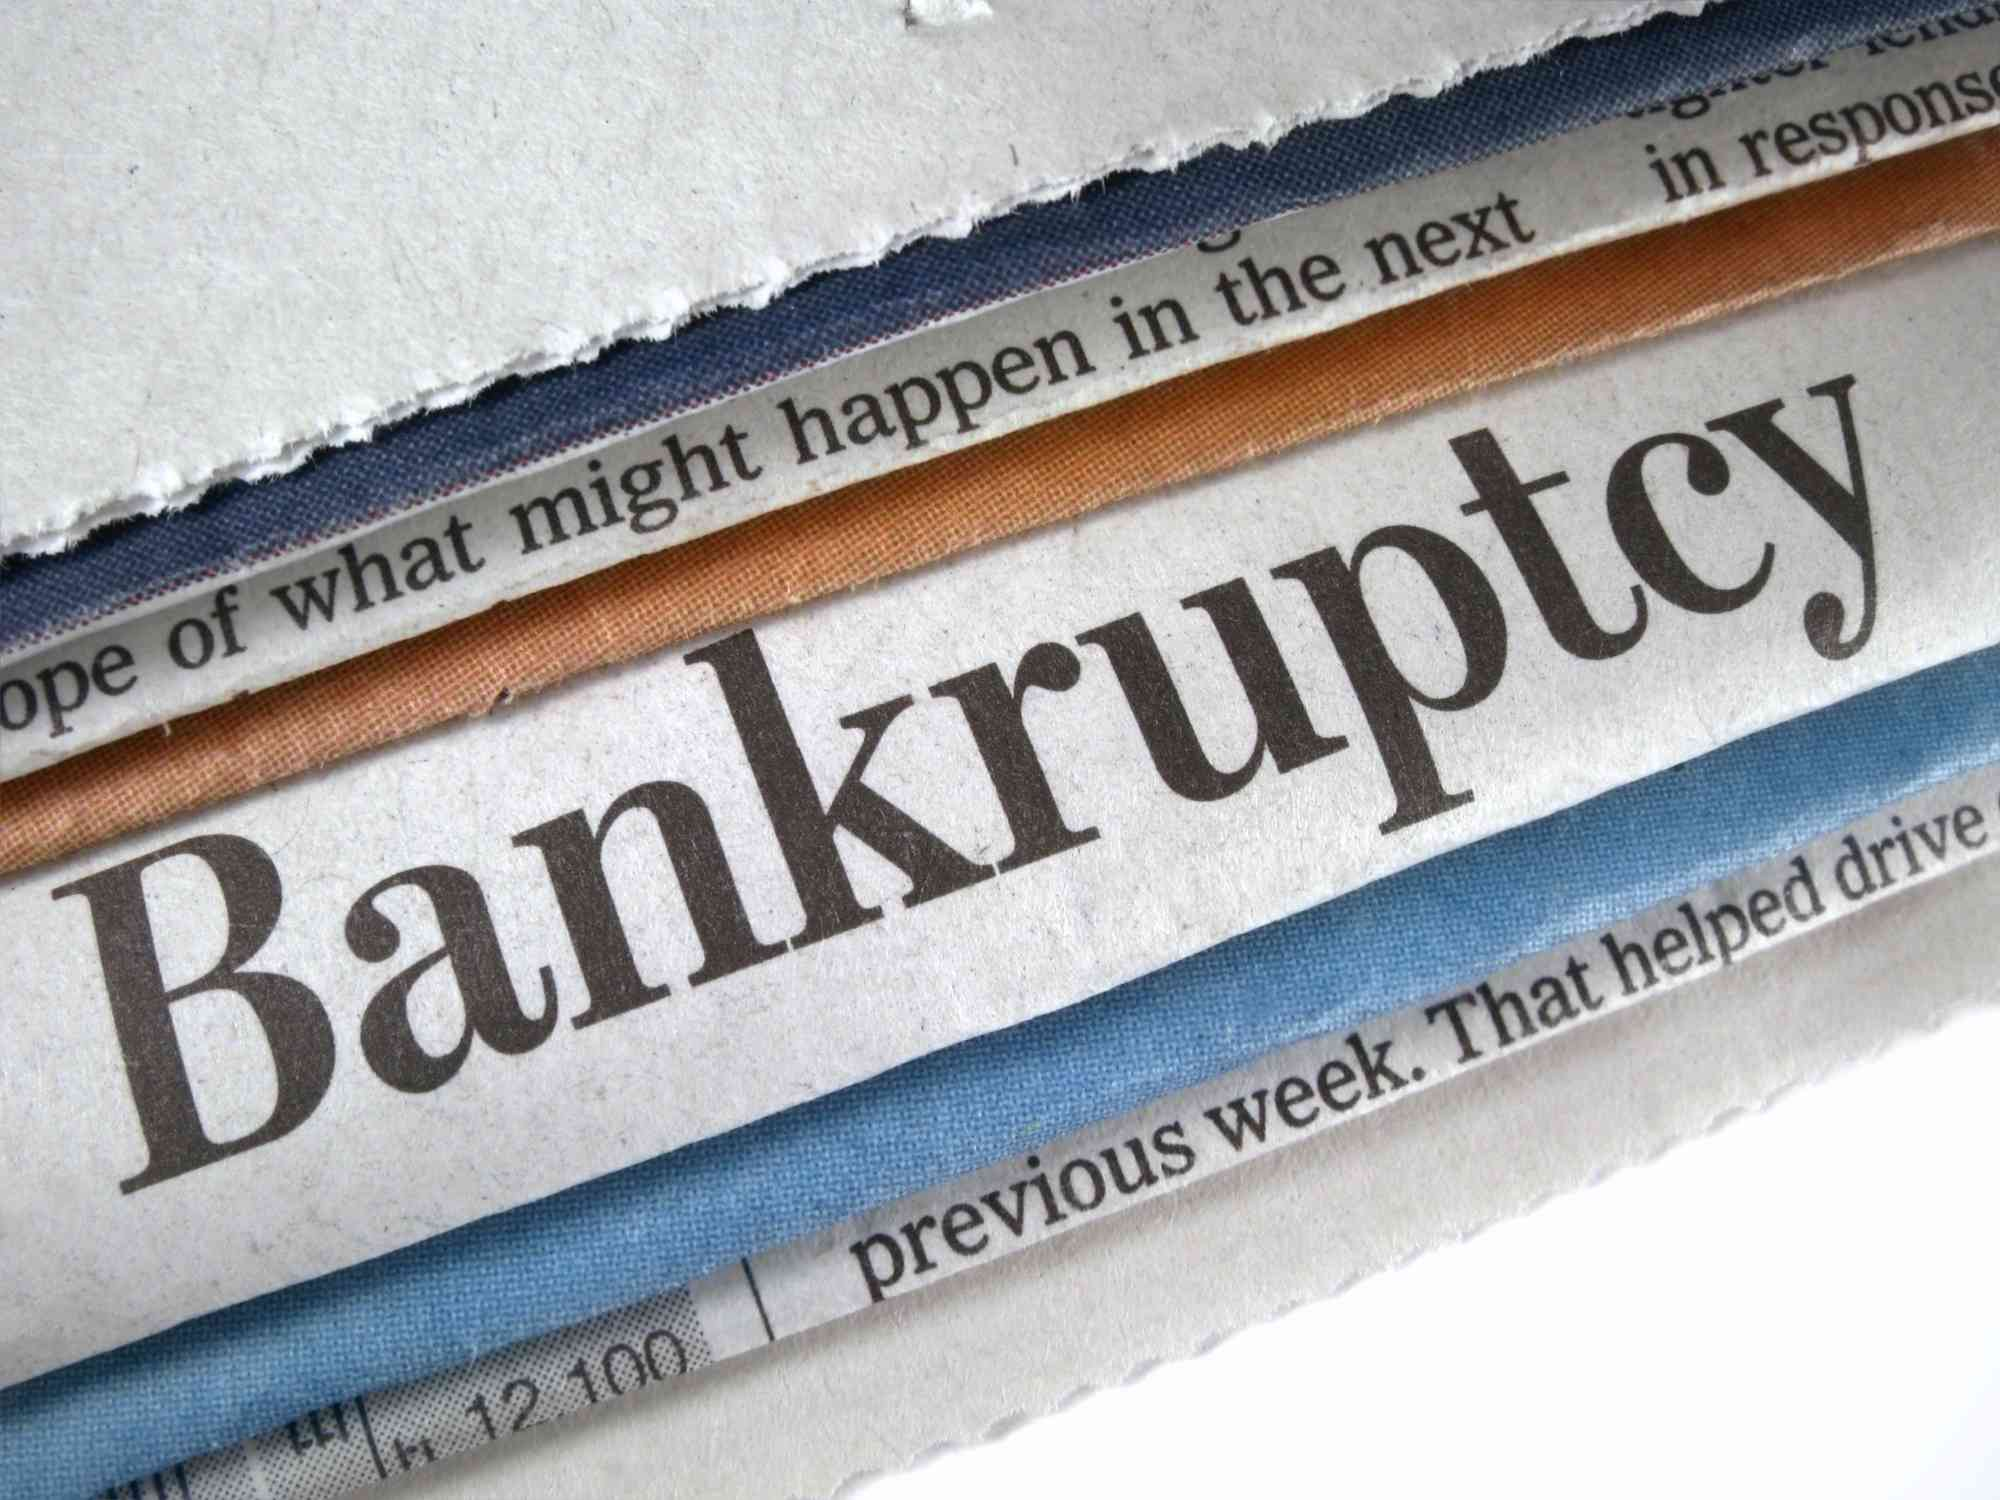 Corporations file Chapter 11 to reorganize debt